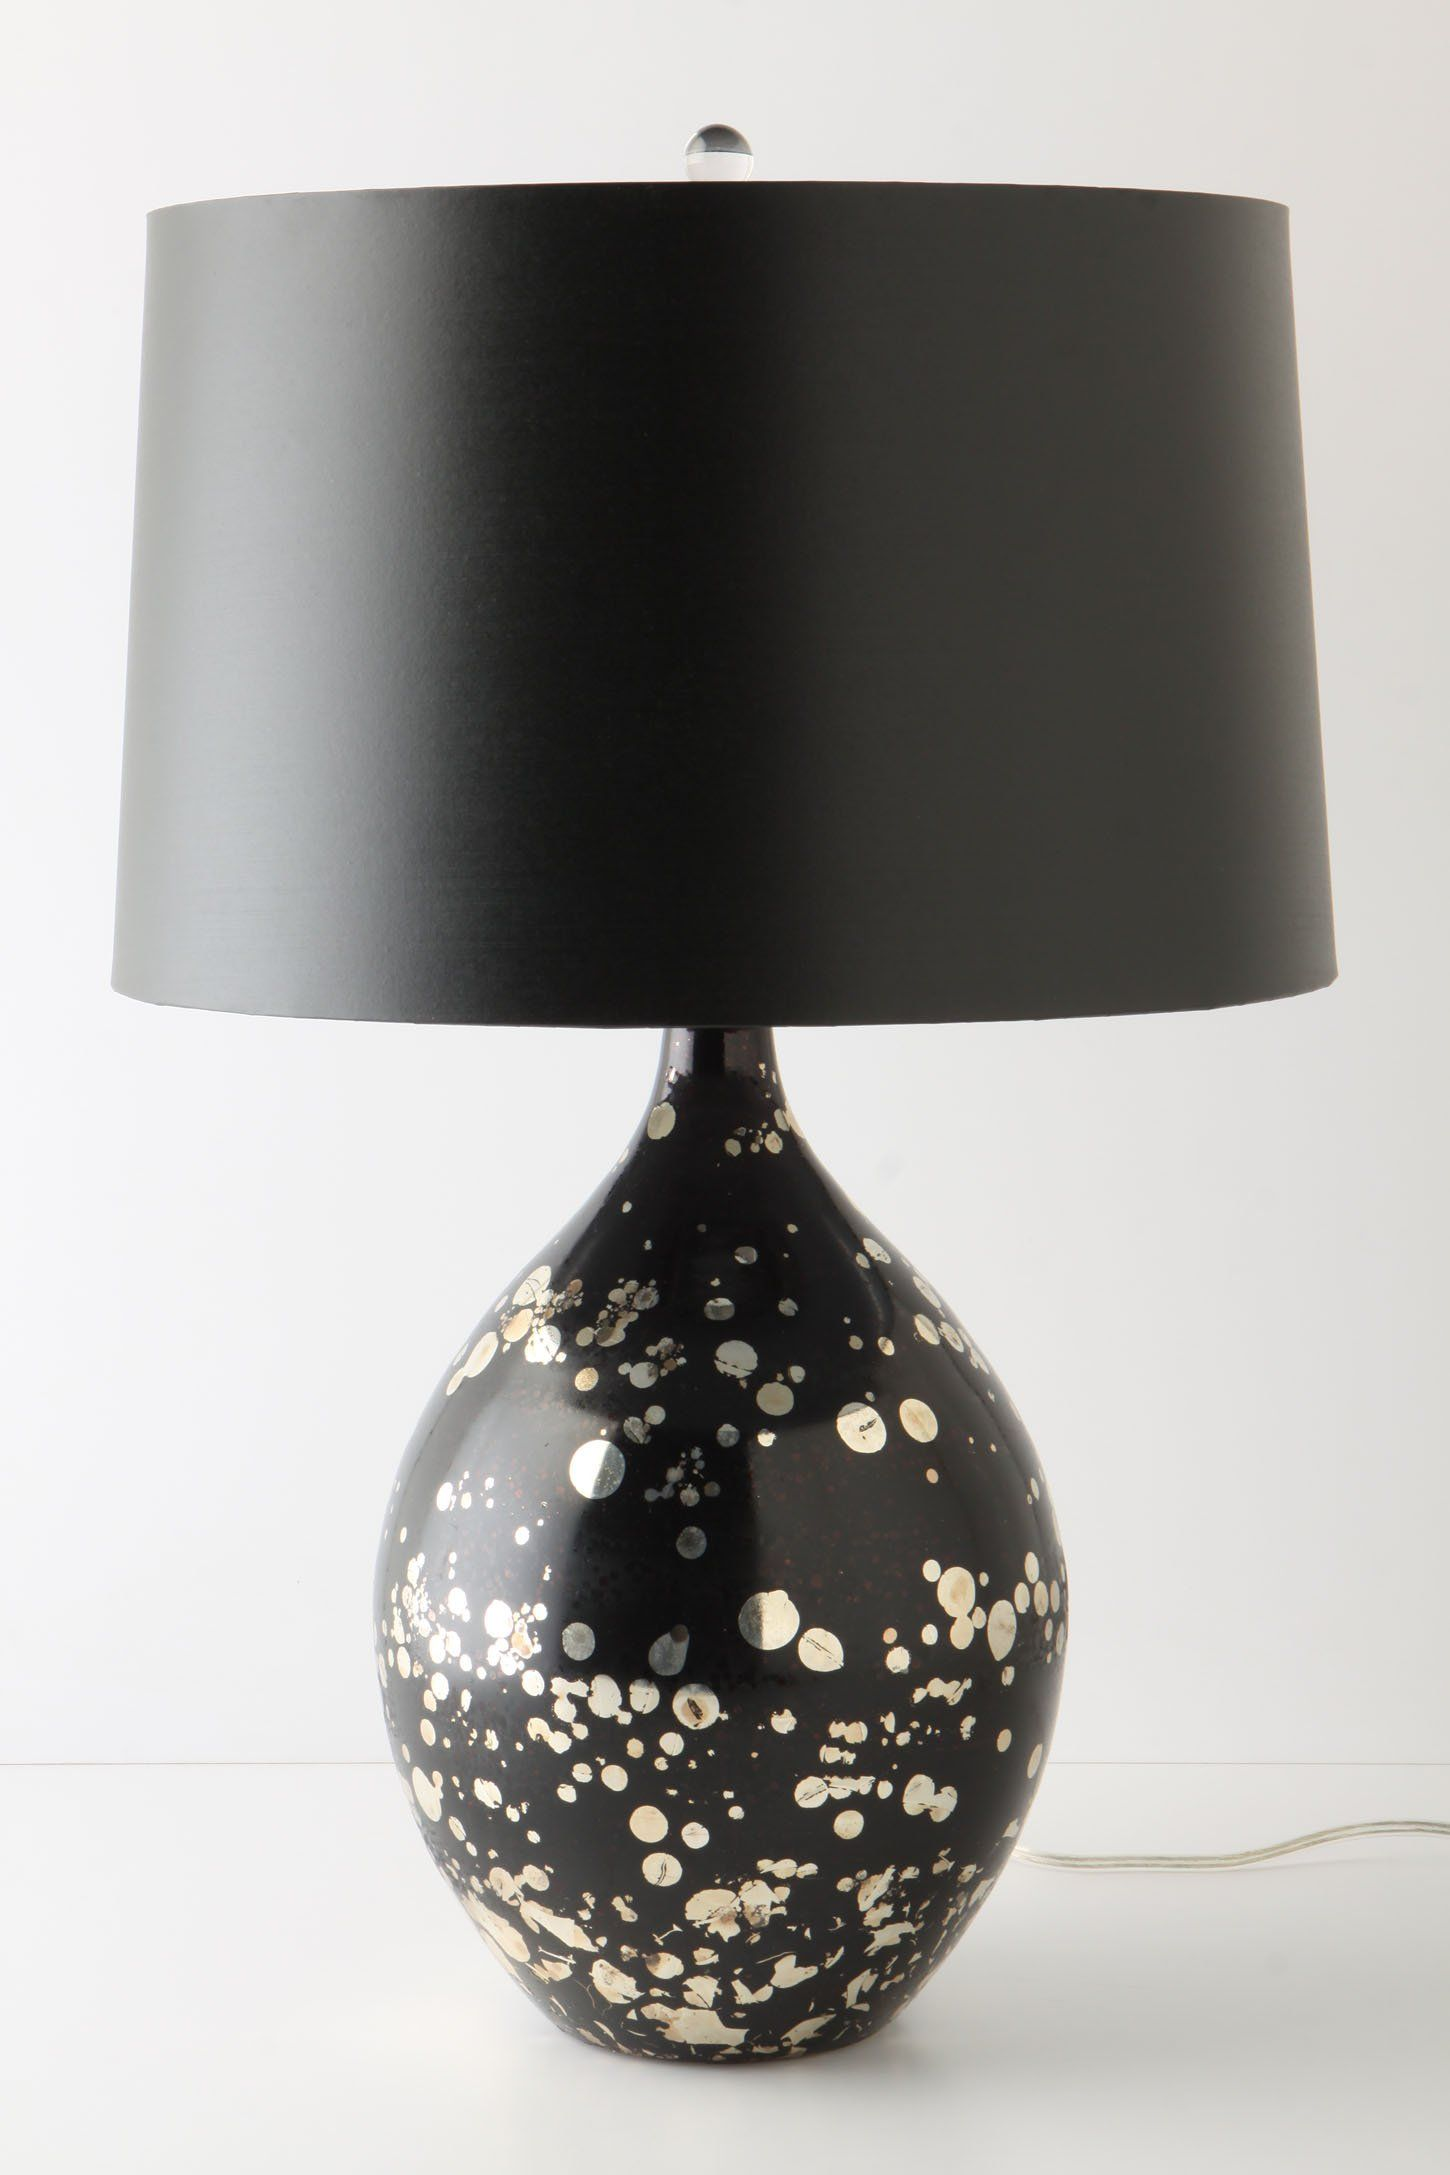 Mouth-blown, gold-splattered black glass is topped with a silver-foil-lined black shade, creating a modern, moody, metallic light source.